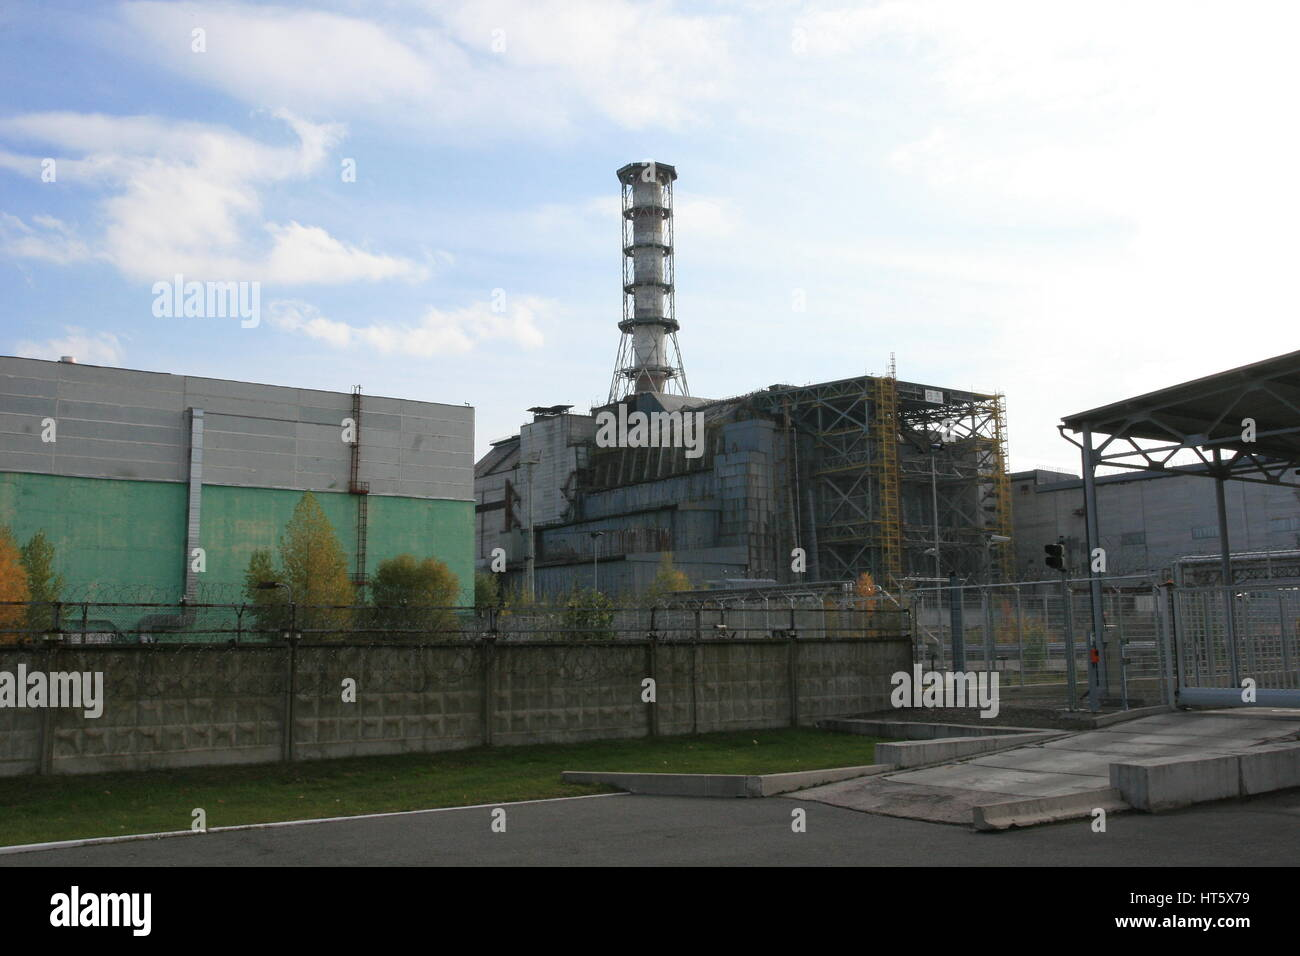 exploded reactor 4 from Chernobyl power plant - Stock Image